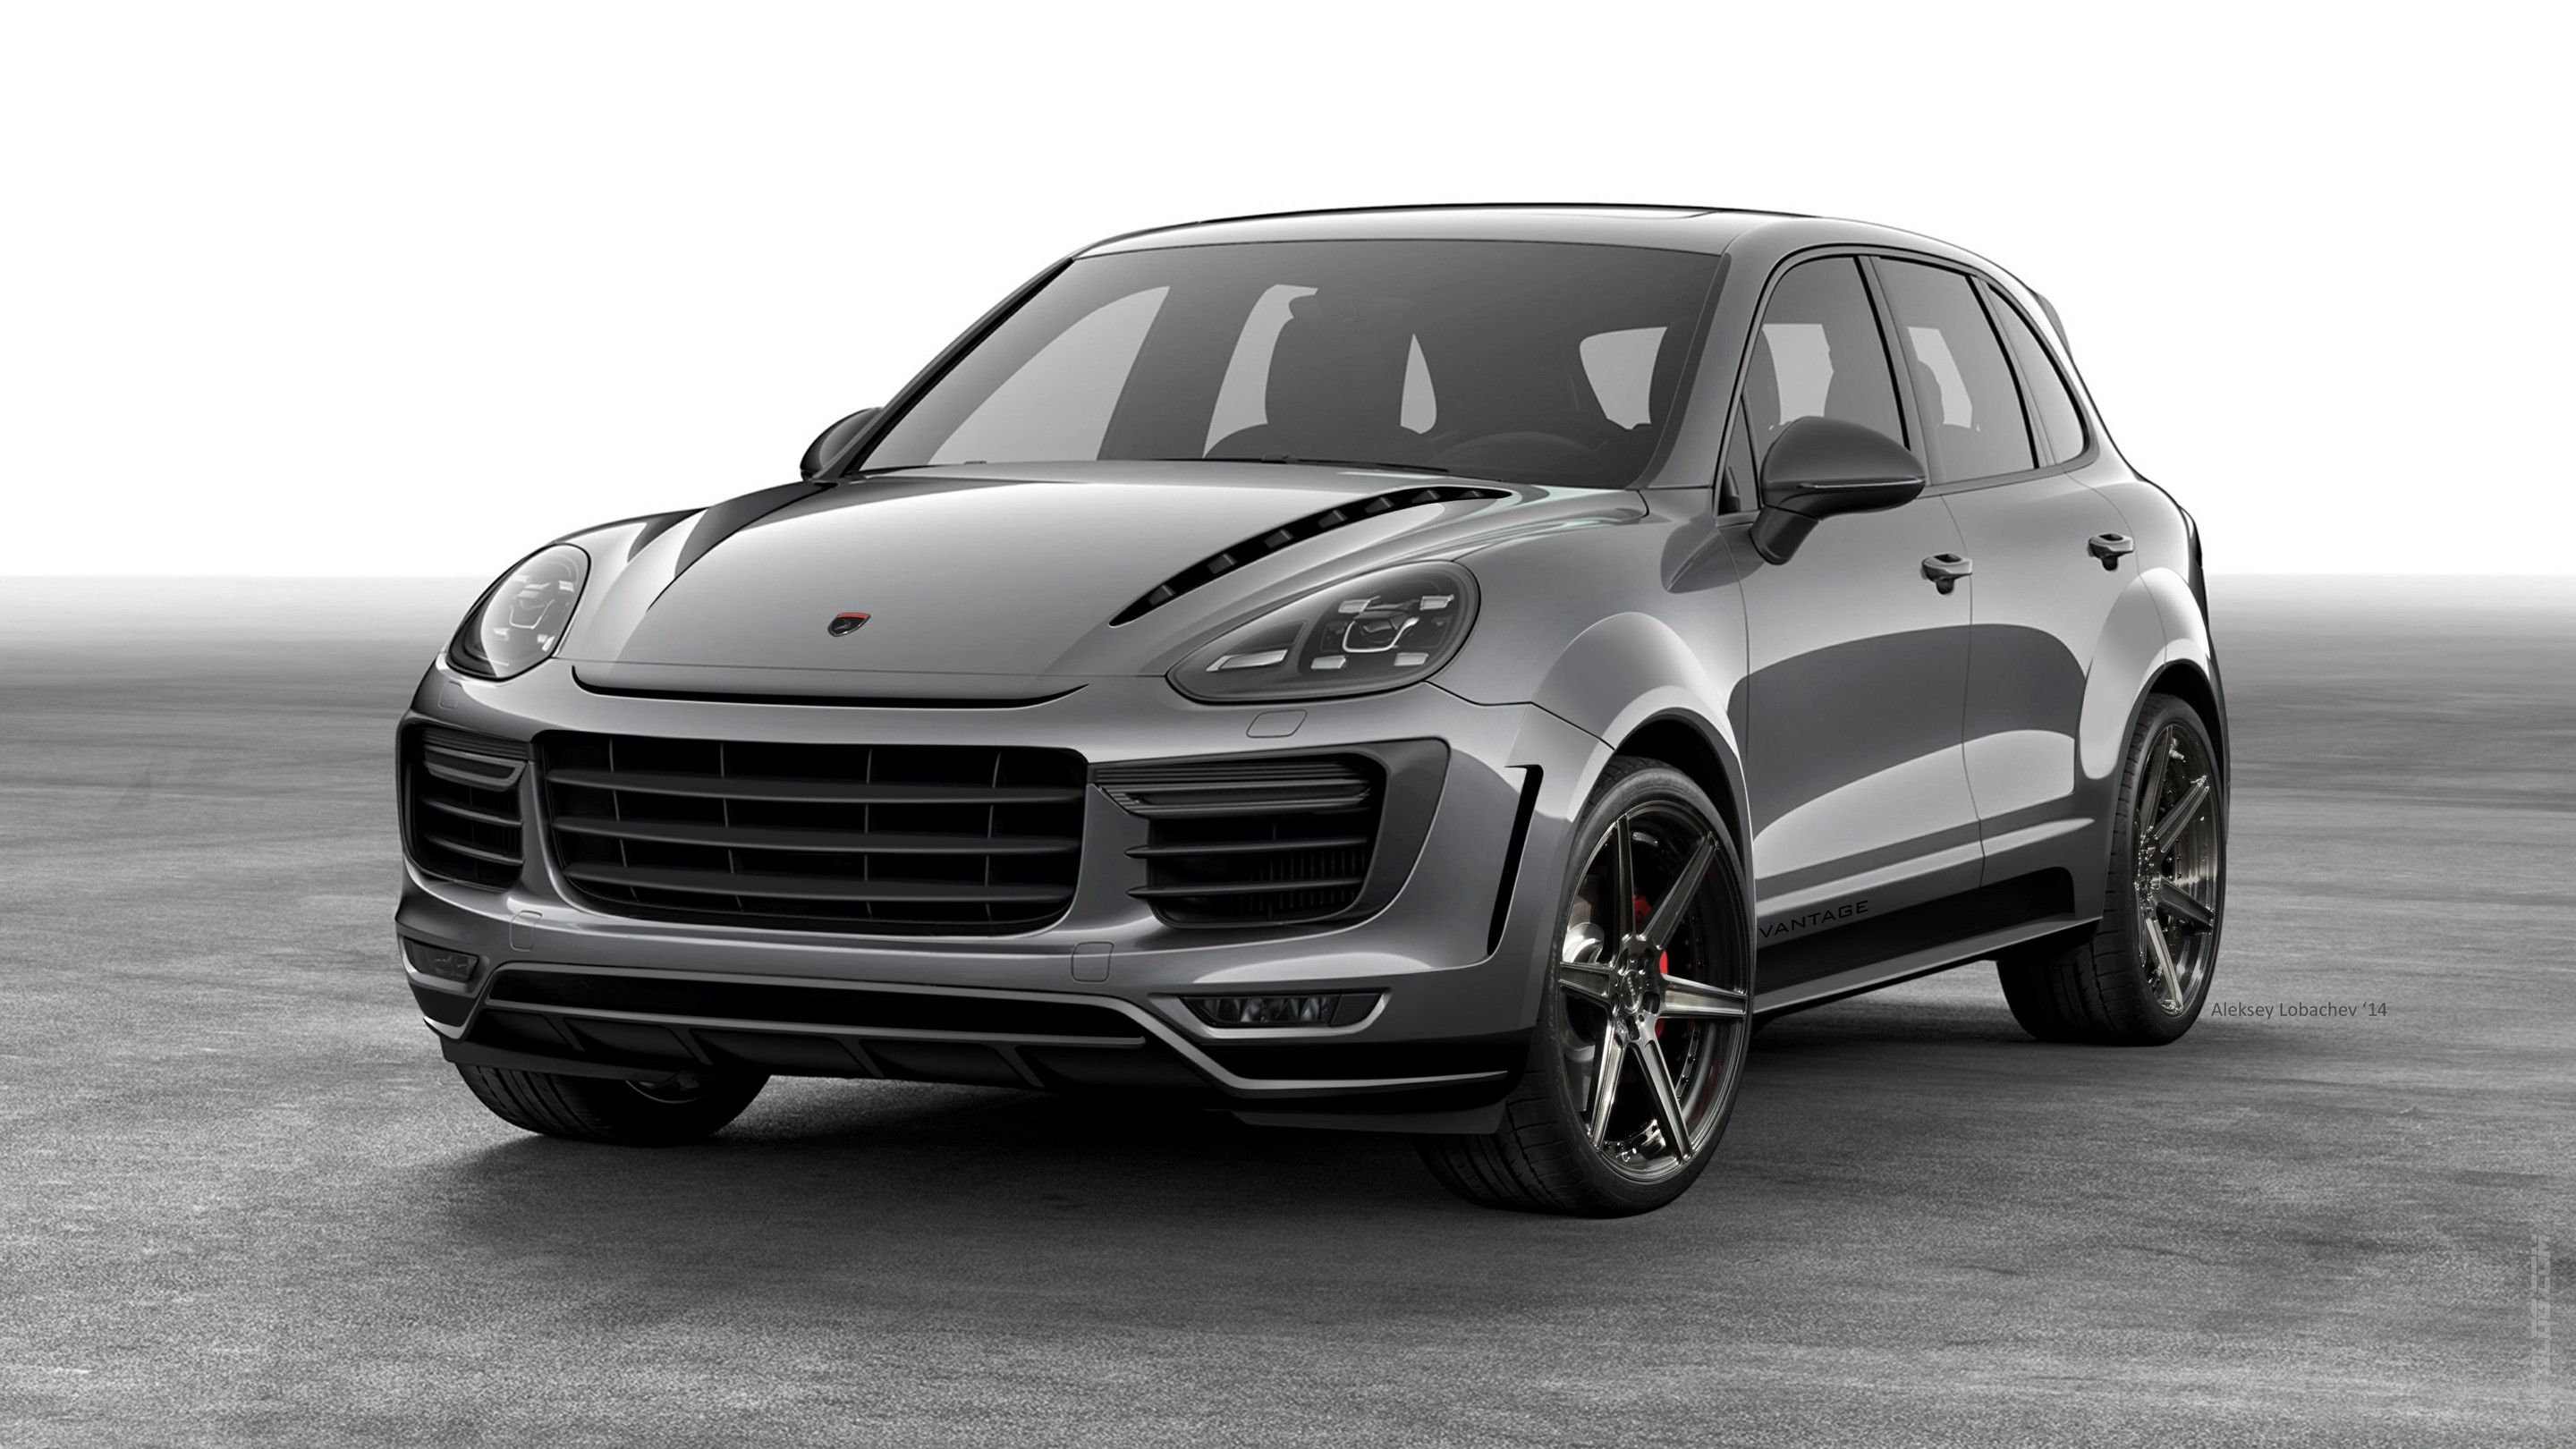 Tuningcars: 2015 Porsche Cayenne Receives Aero Kit From TOPCAR.